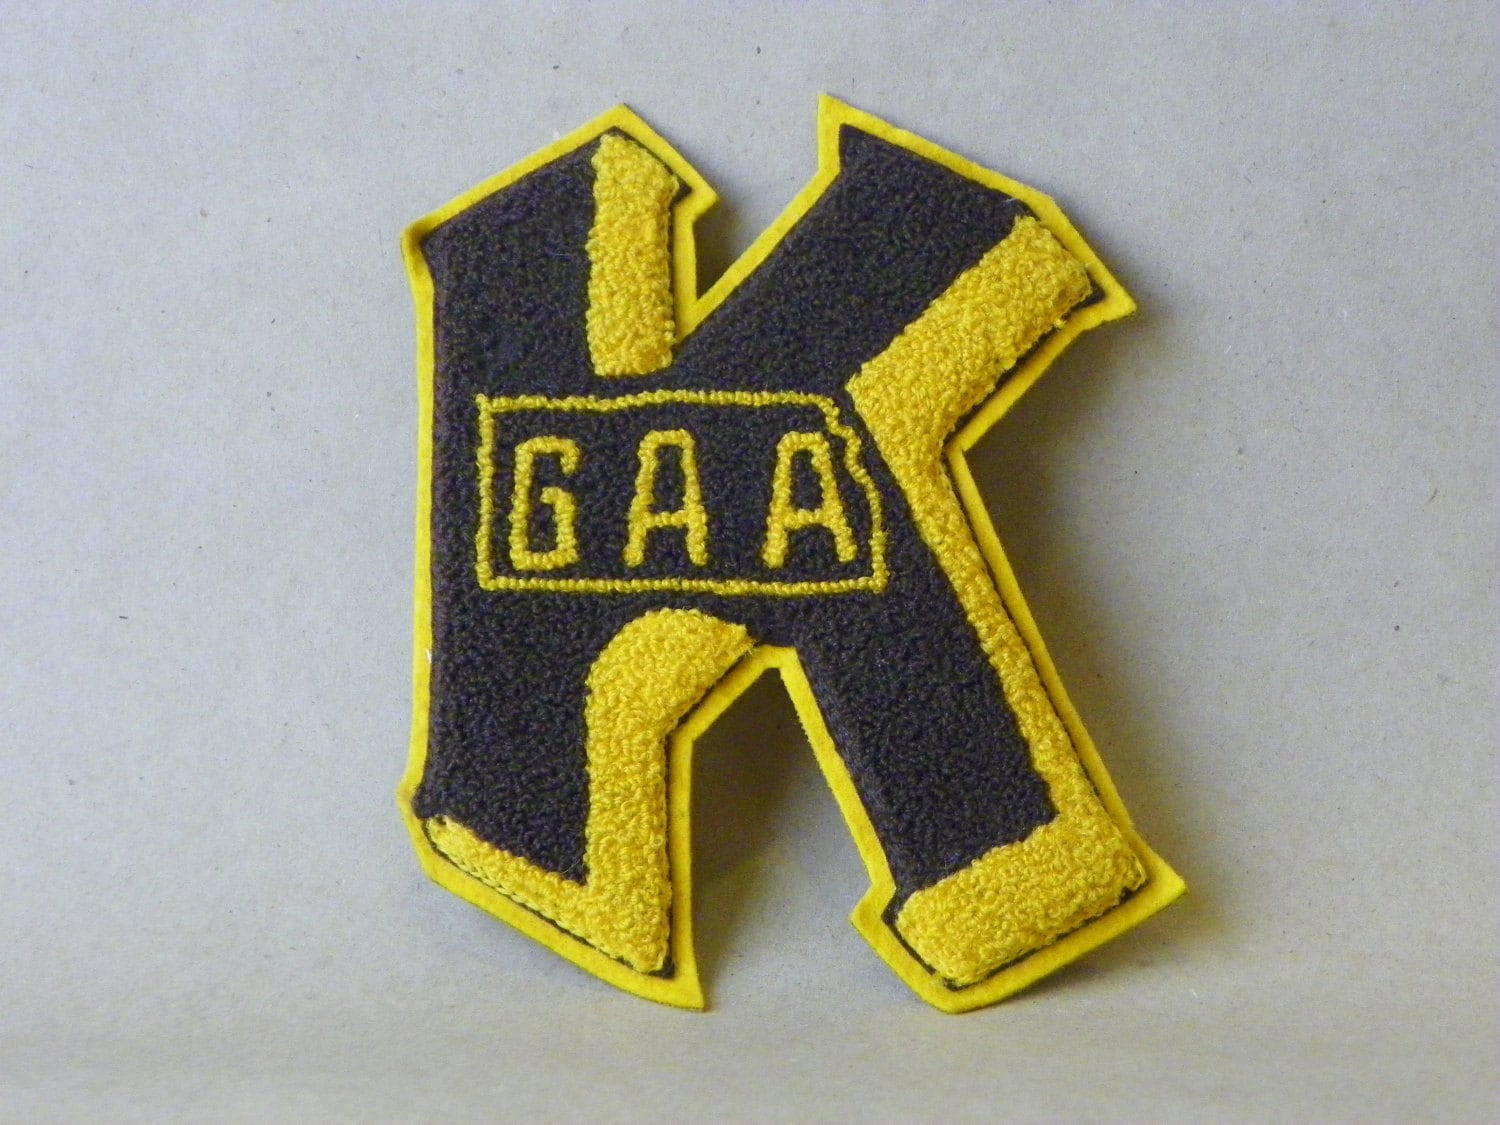 We got spirit yes we do, we got spirit how about you... not without your lettermans patch - anEstateSale